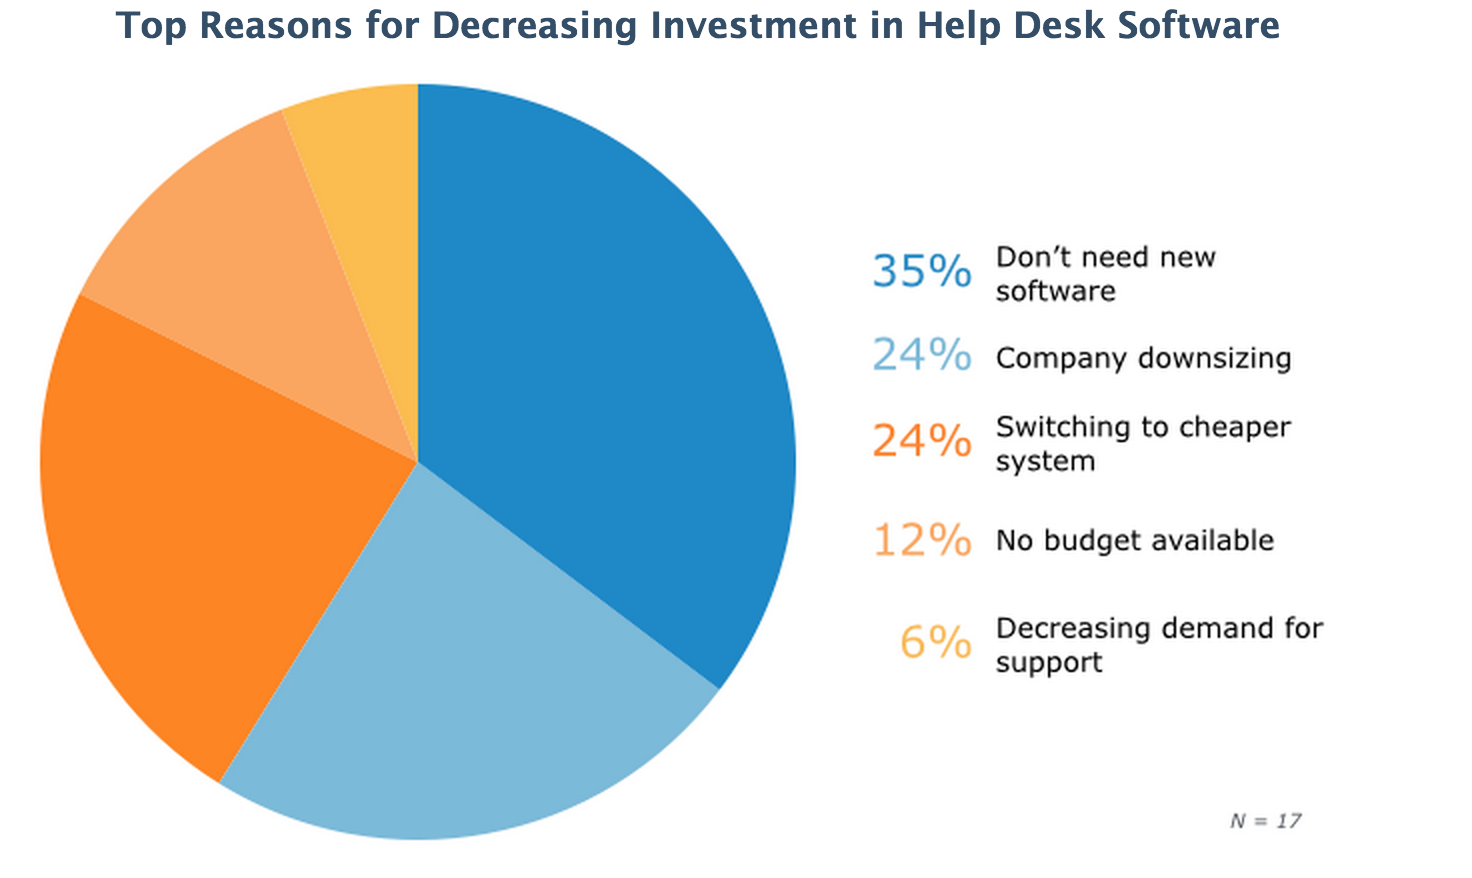 circle diagram showing top reasons for decreasing investment in help desk software